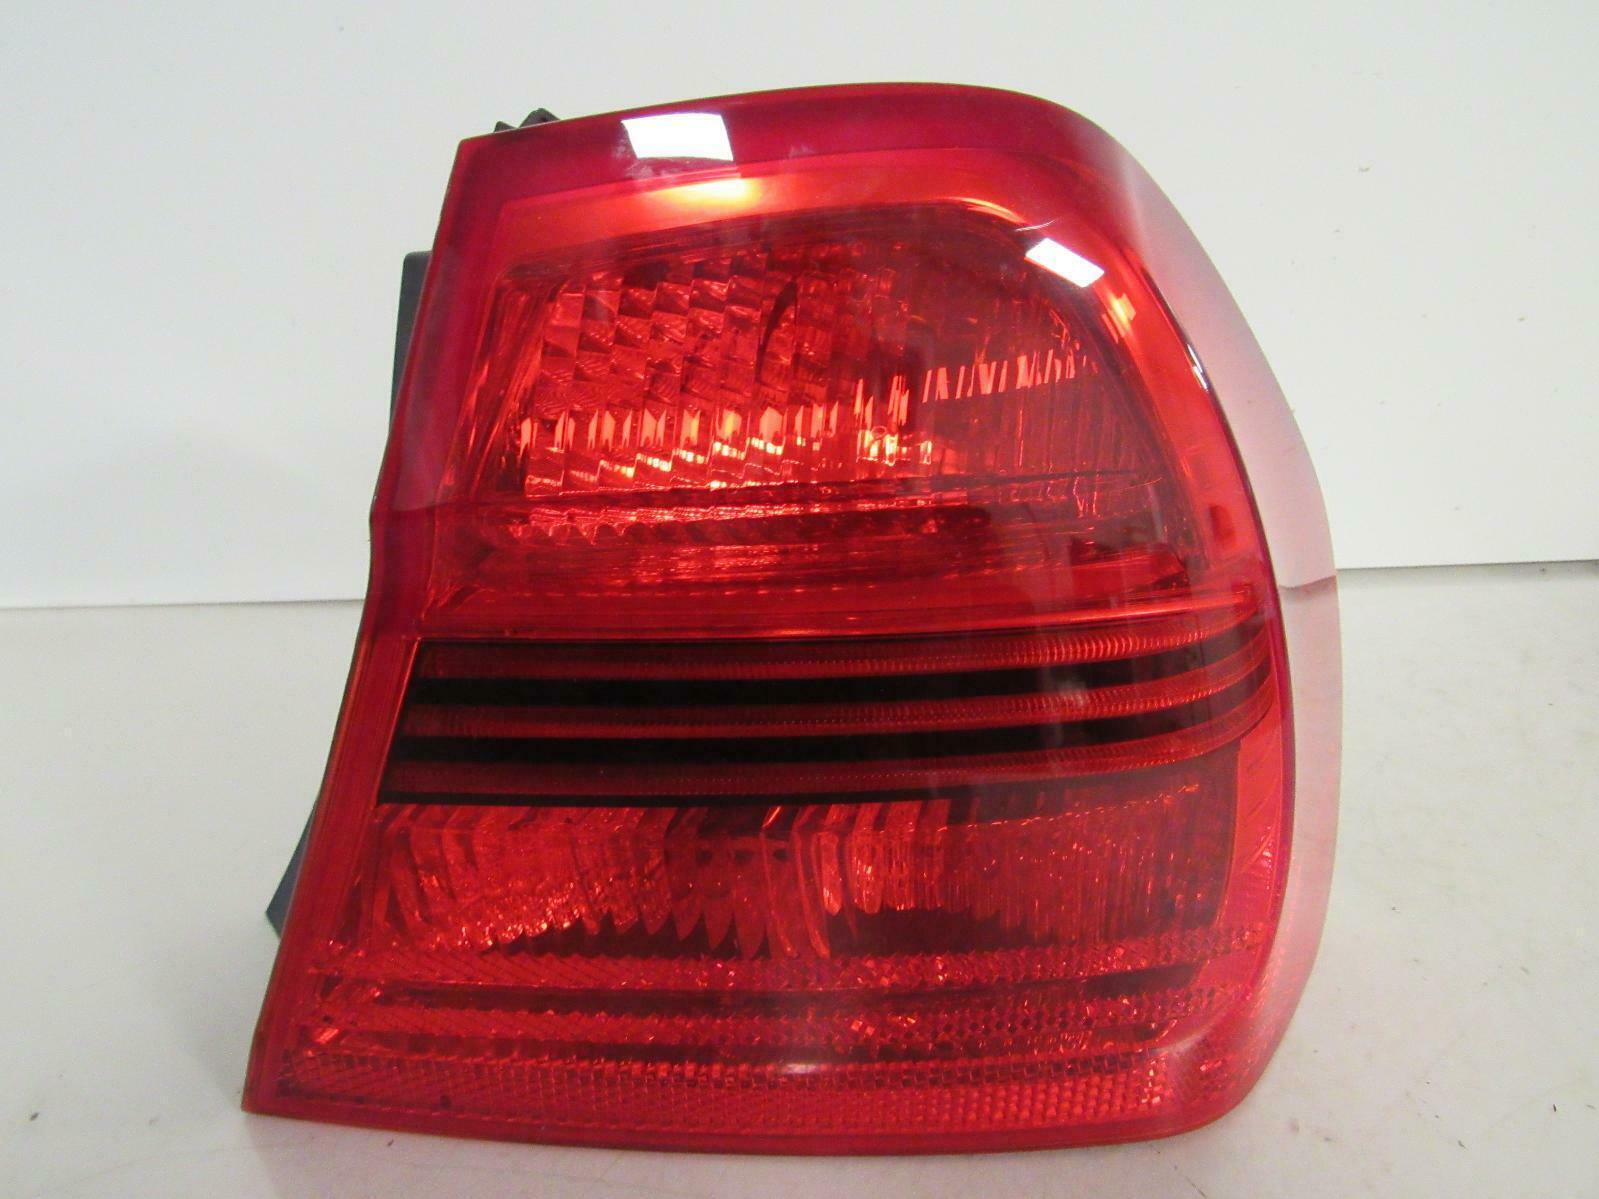 Primary image for 2007 2008 BMW 3-SERIES SEDAN PASSENGER RH LED TAIL LIGHT OEM D45R